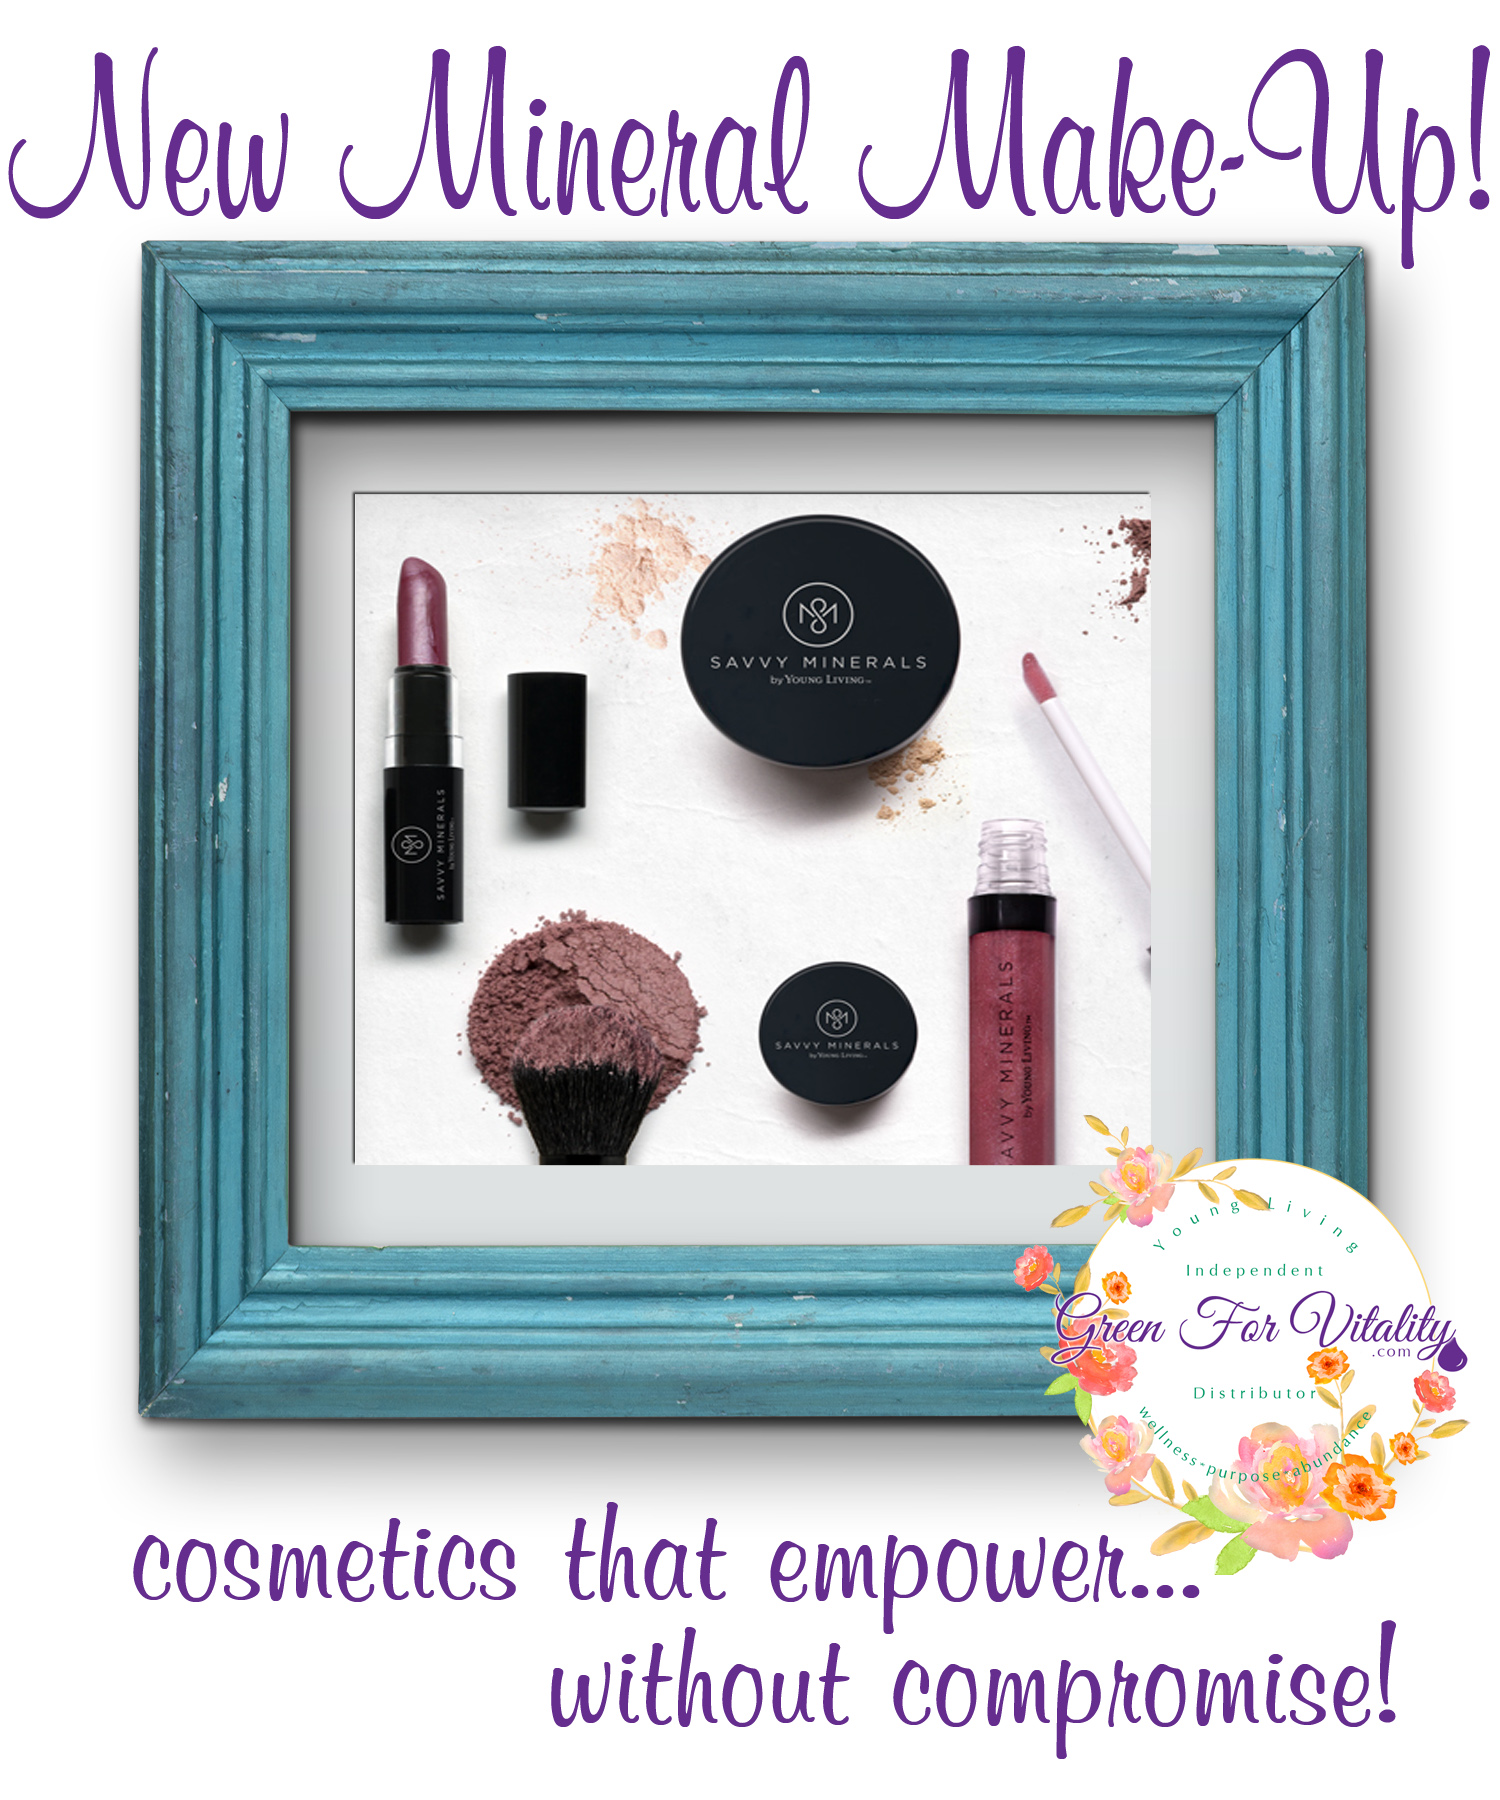 New Naural Make-Up from Young Living